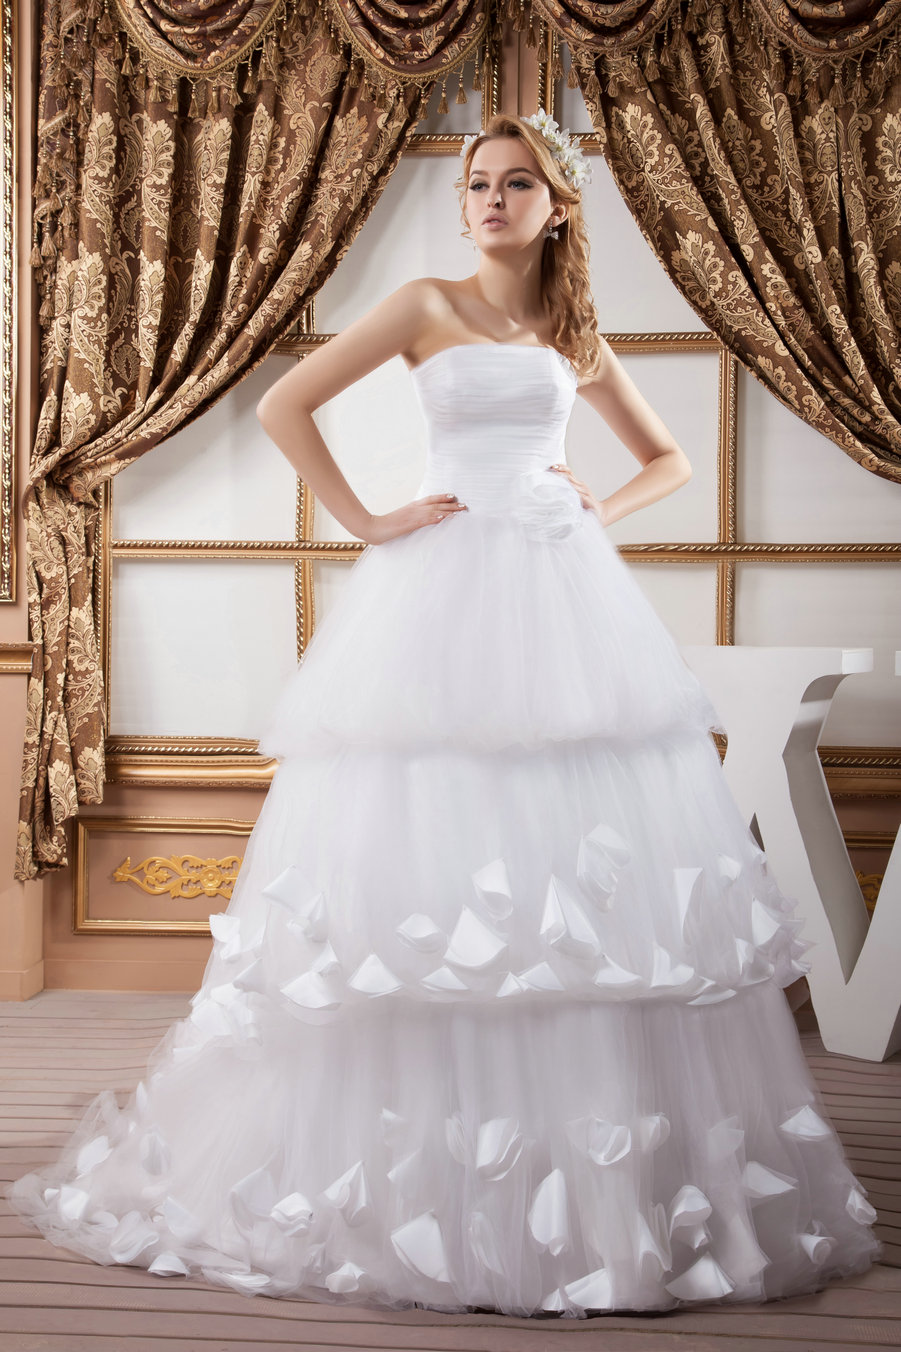 To Accompany Their Wants And Needs Many Online Stores Provide High Quality Prom Wedding Dresses